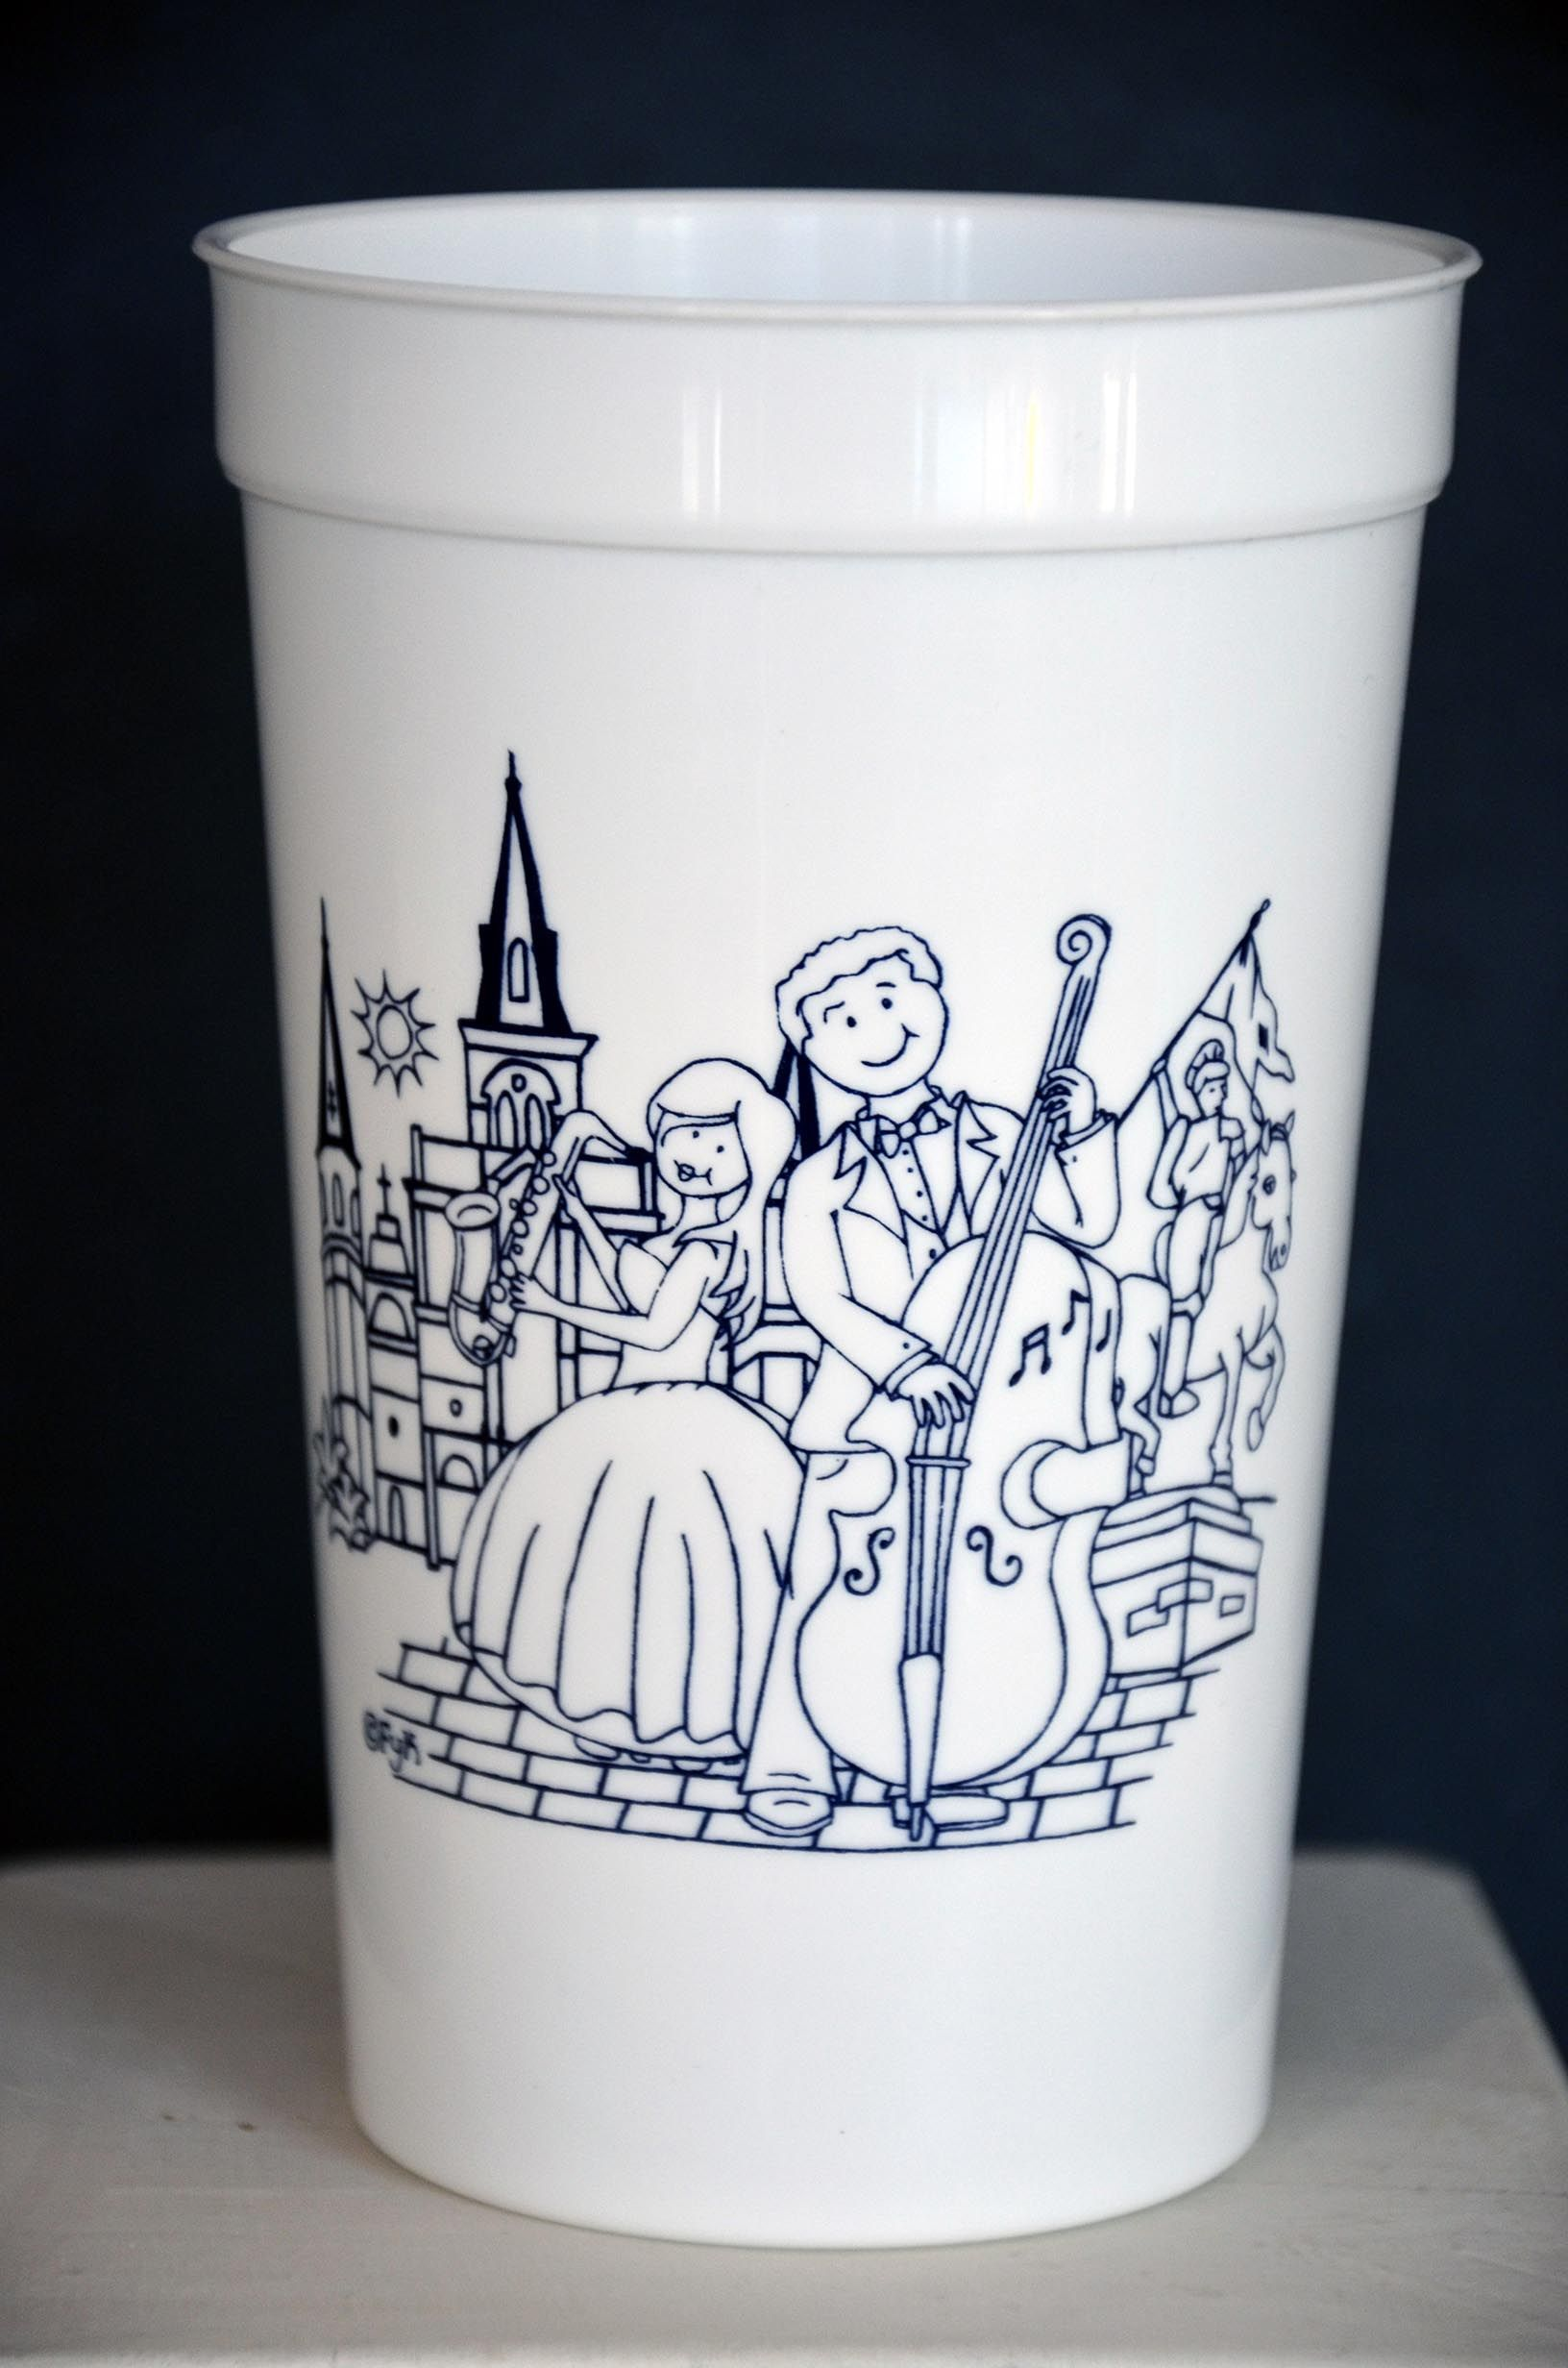 Personalizedstadiumcups are an inexpensive touch to any event ...